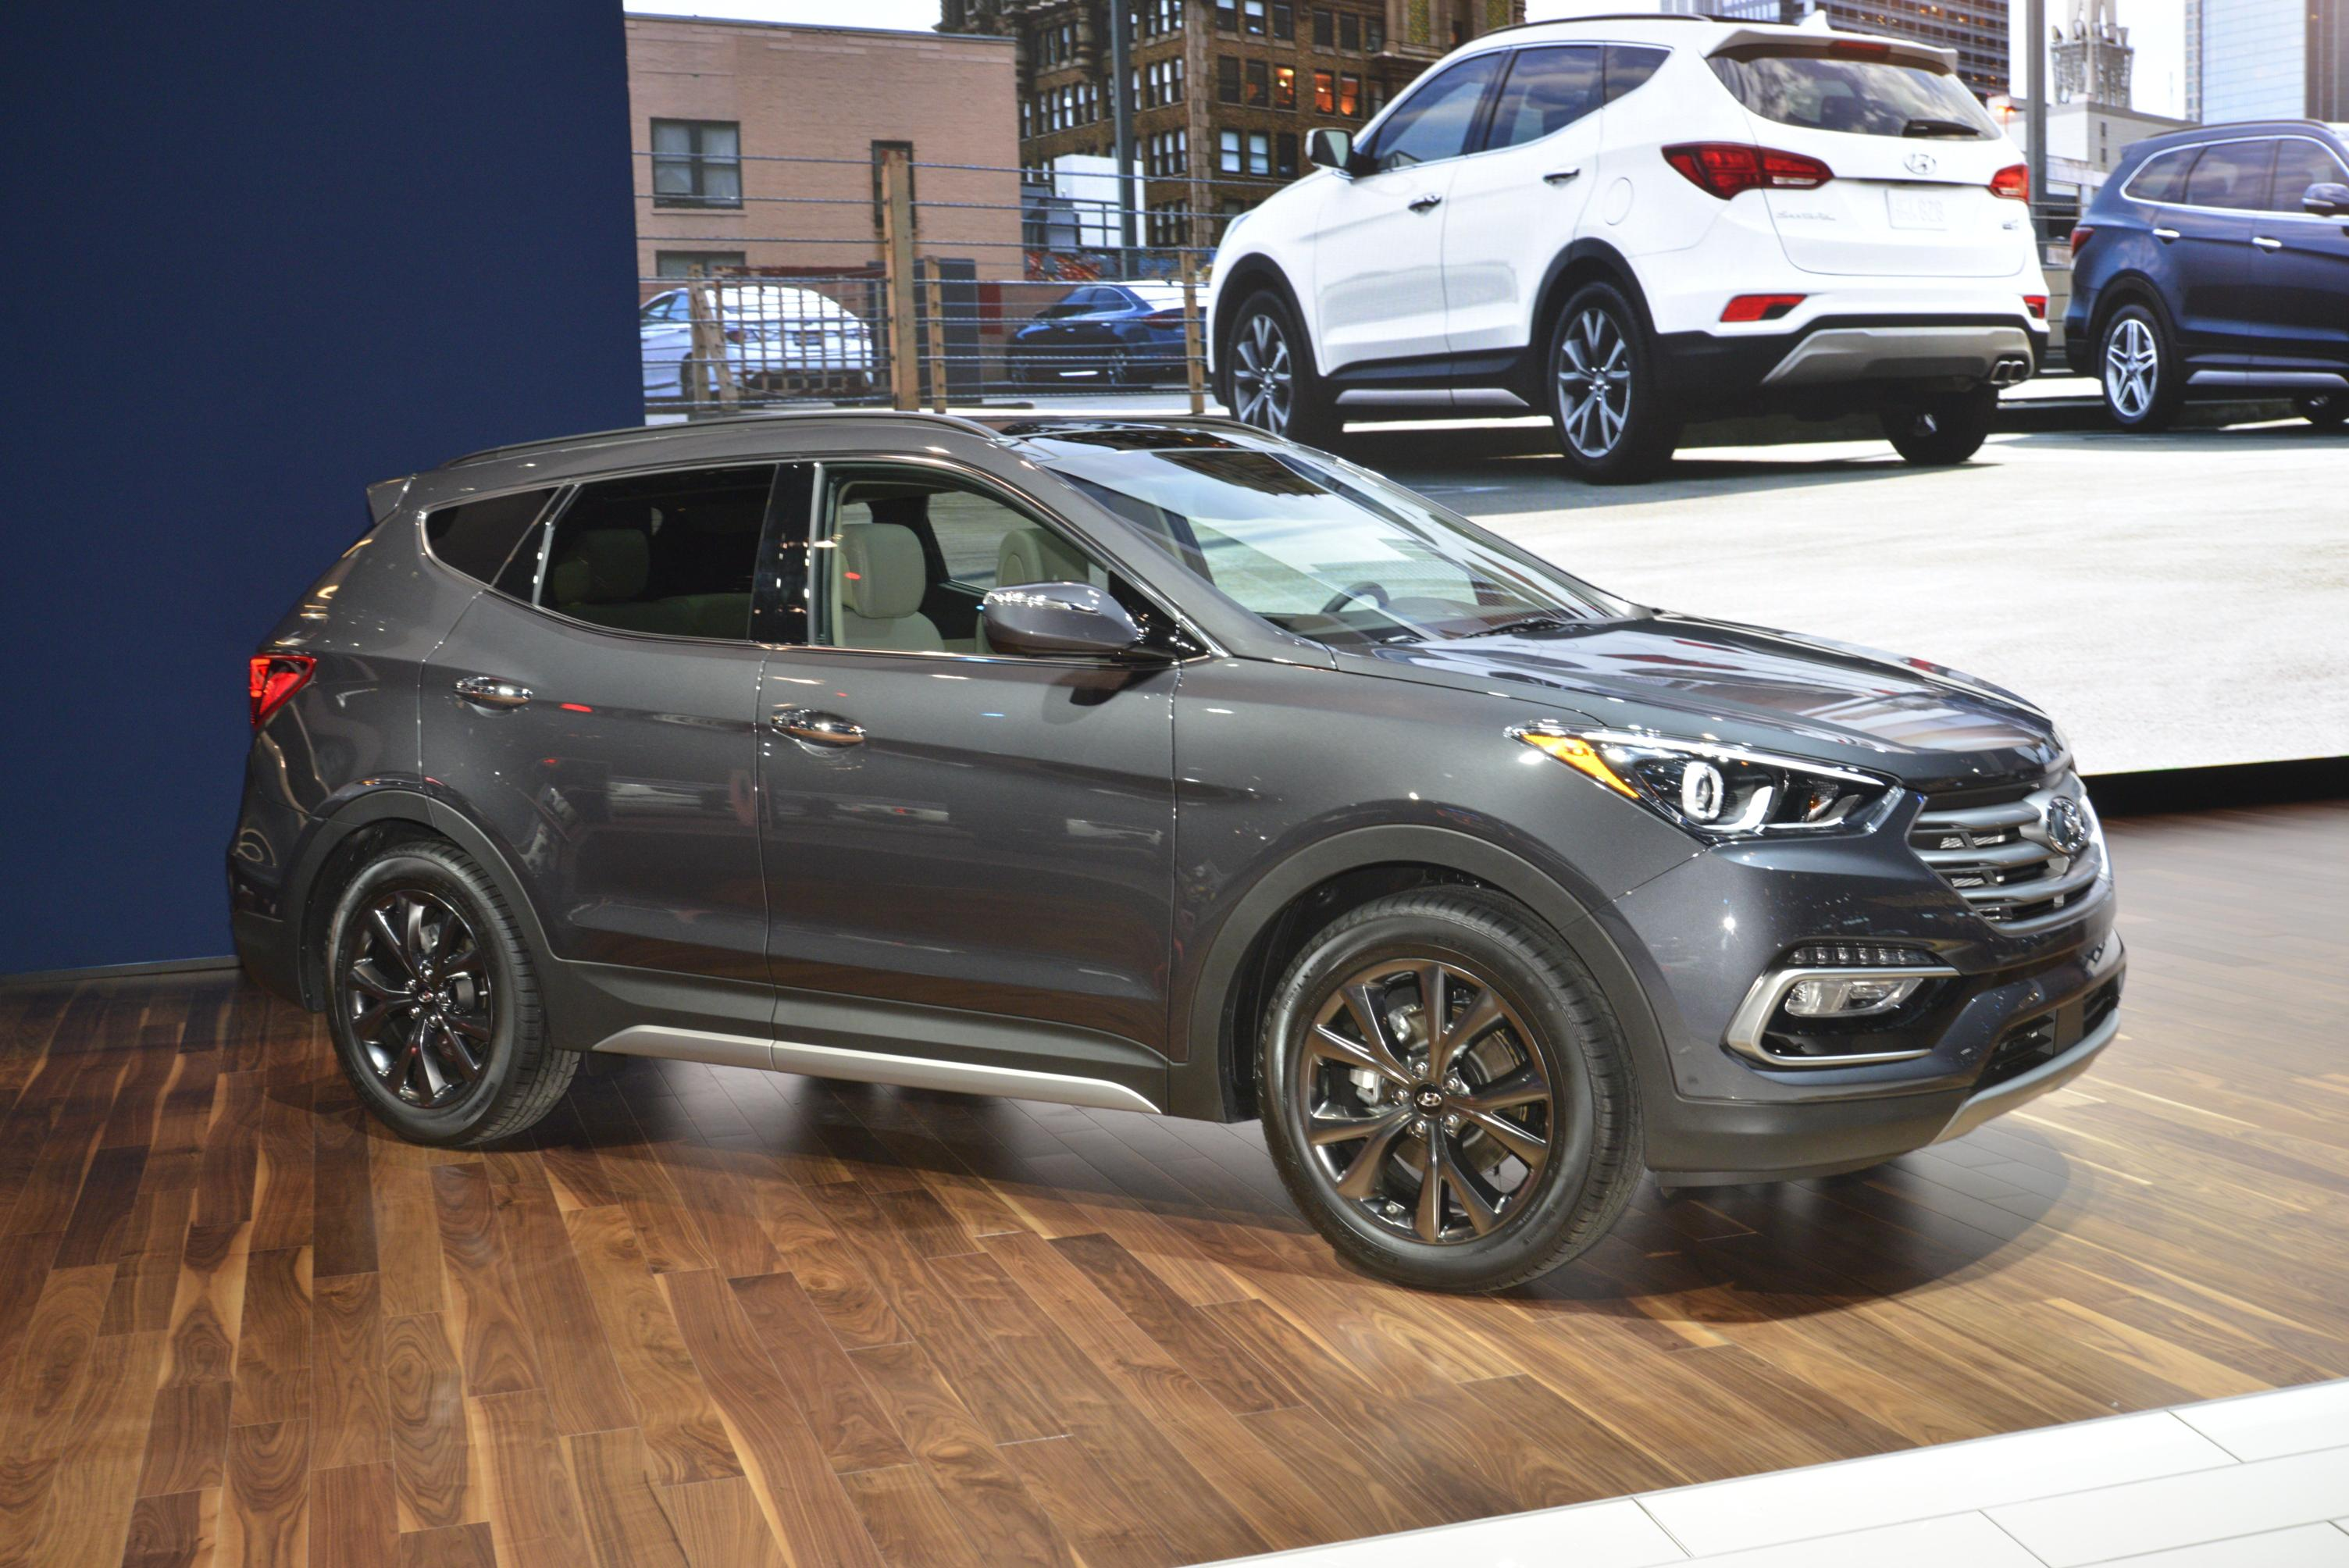 2016 Hyundai Santa Fe >> 2017 Hyundai Santa Fe Thinks It's Got a Sexy Facelift in ...